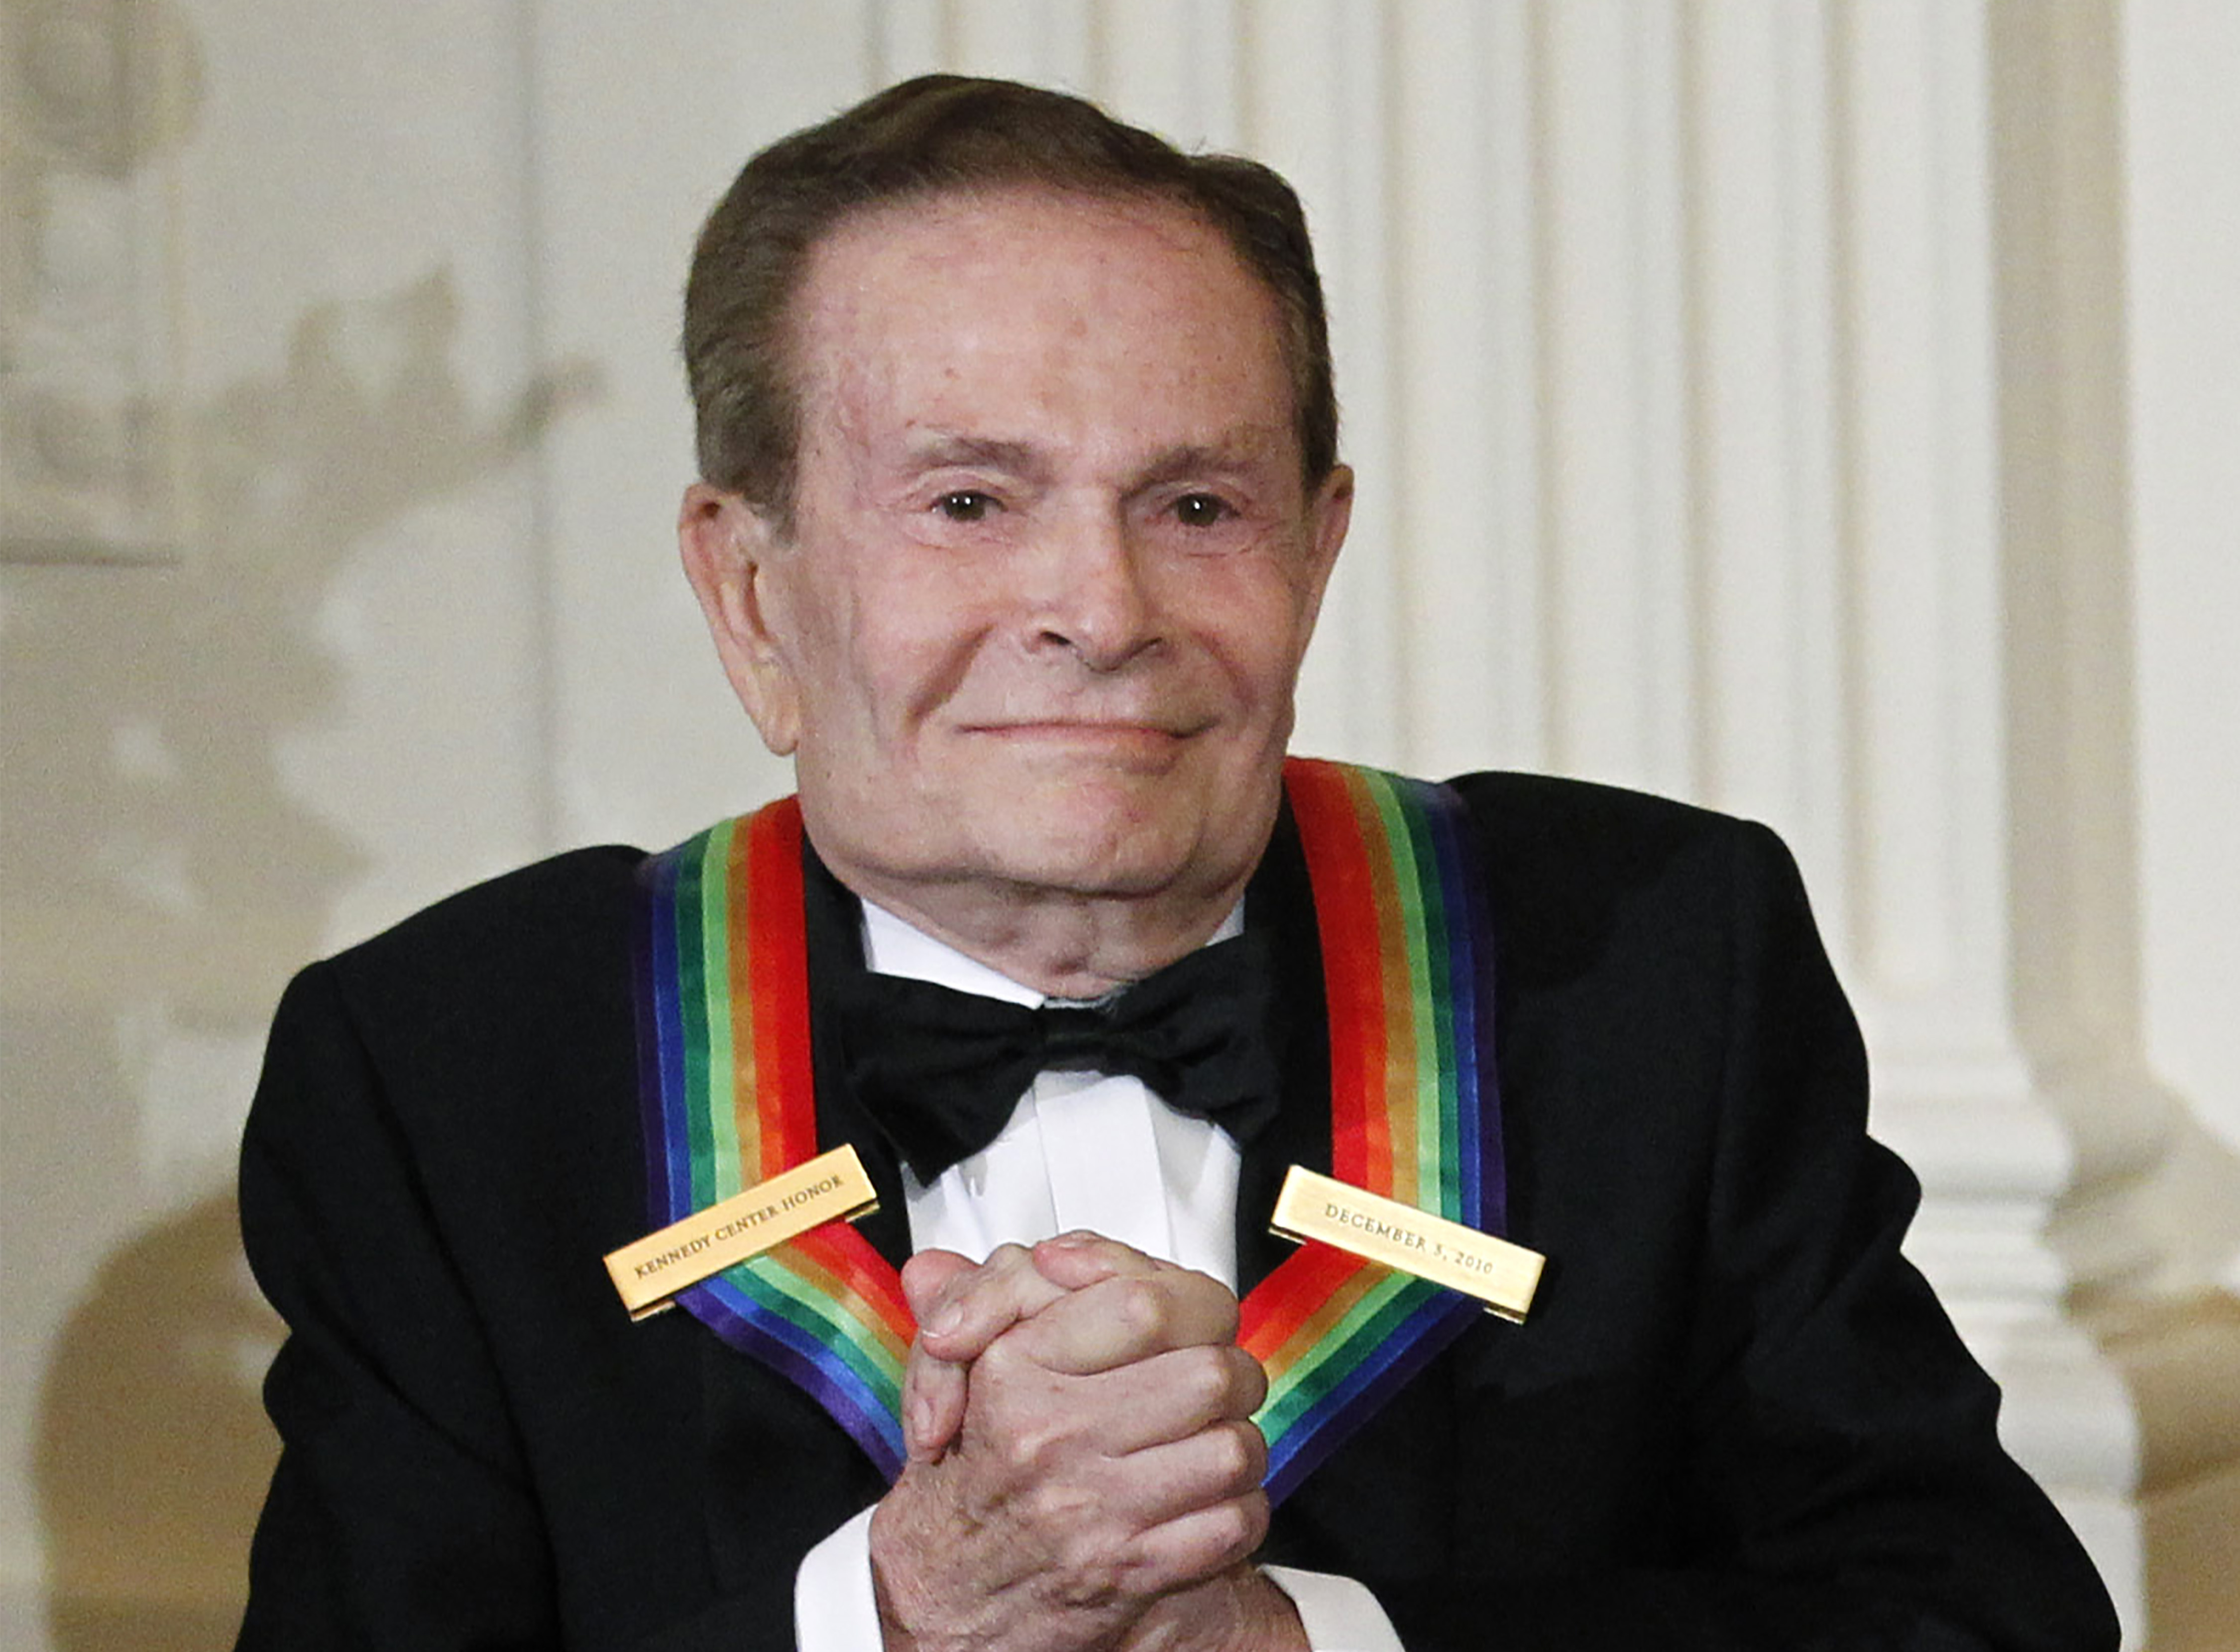 In this Dec. 5, 2010, file photo, composer Jerry Herman, one of the recipients of the 2010 Kennedy Center Honors is introduced during a reception in the East Room of the White House in Washington.